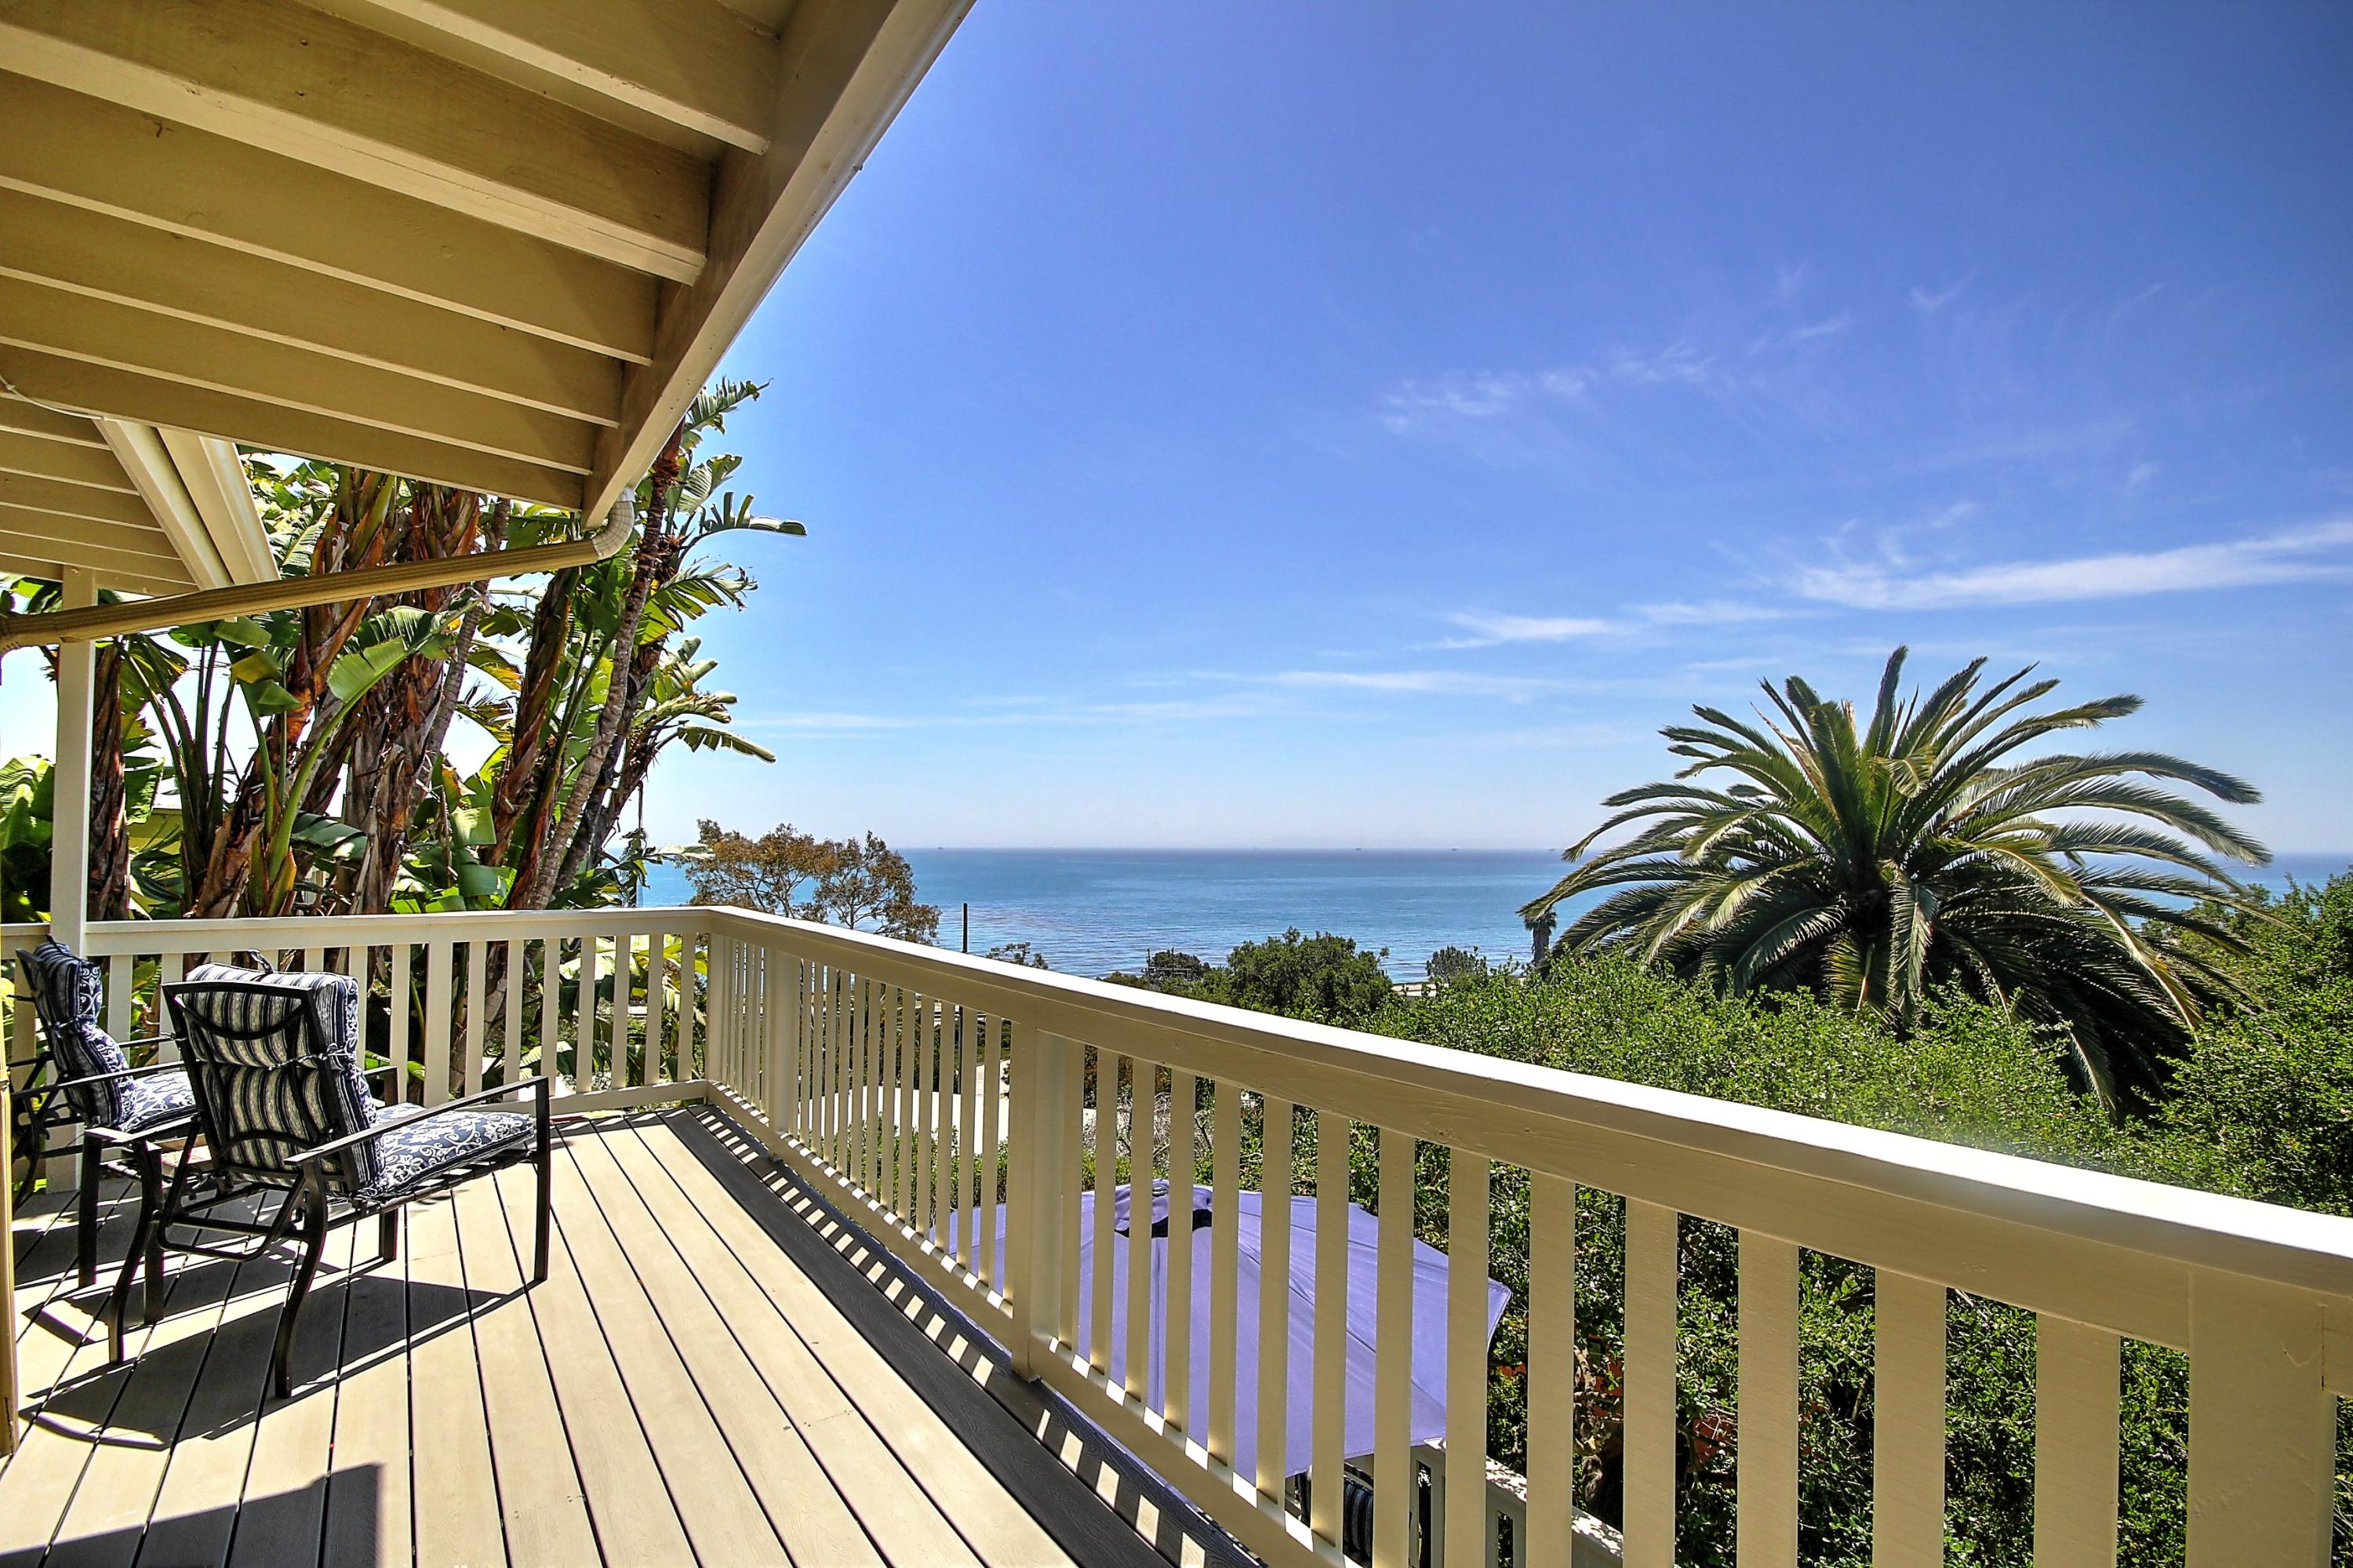 Property photo for 2173 Lillie Ave Summerland, California 93067 - 19-522